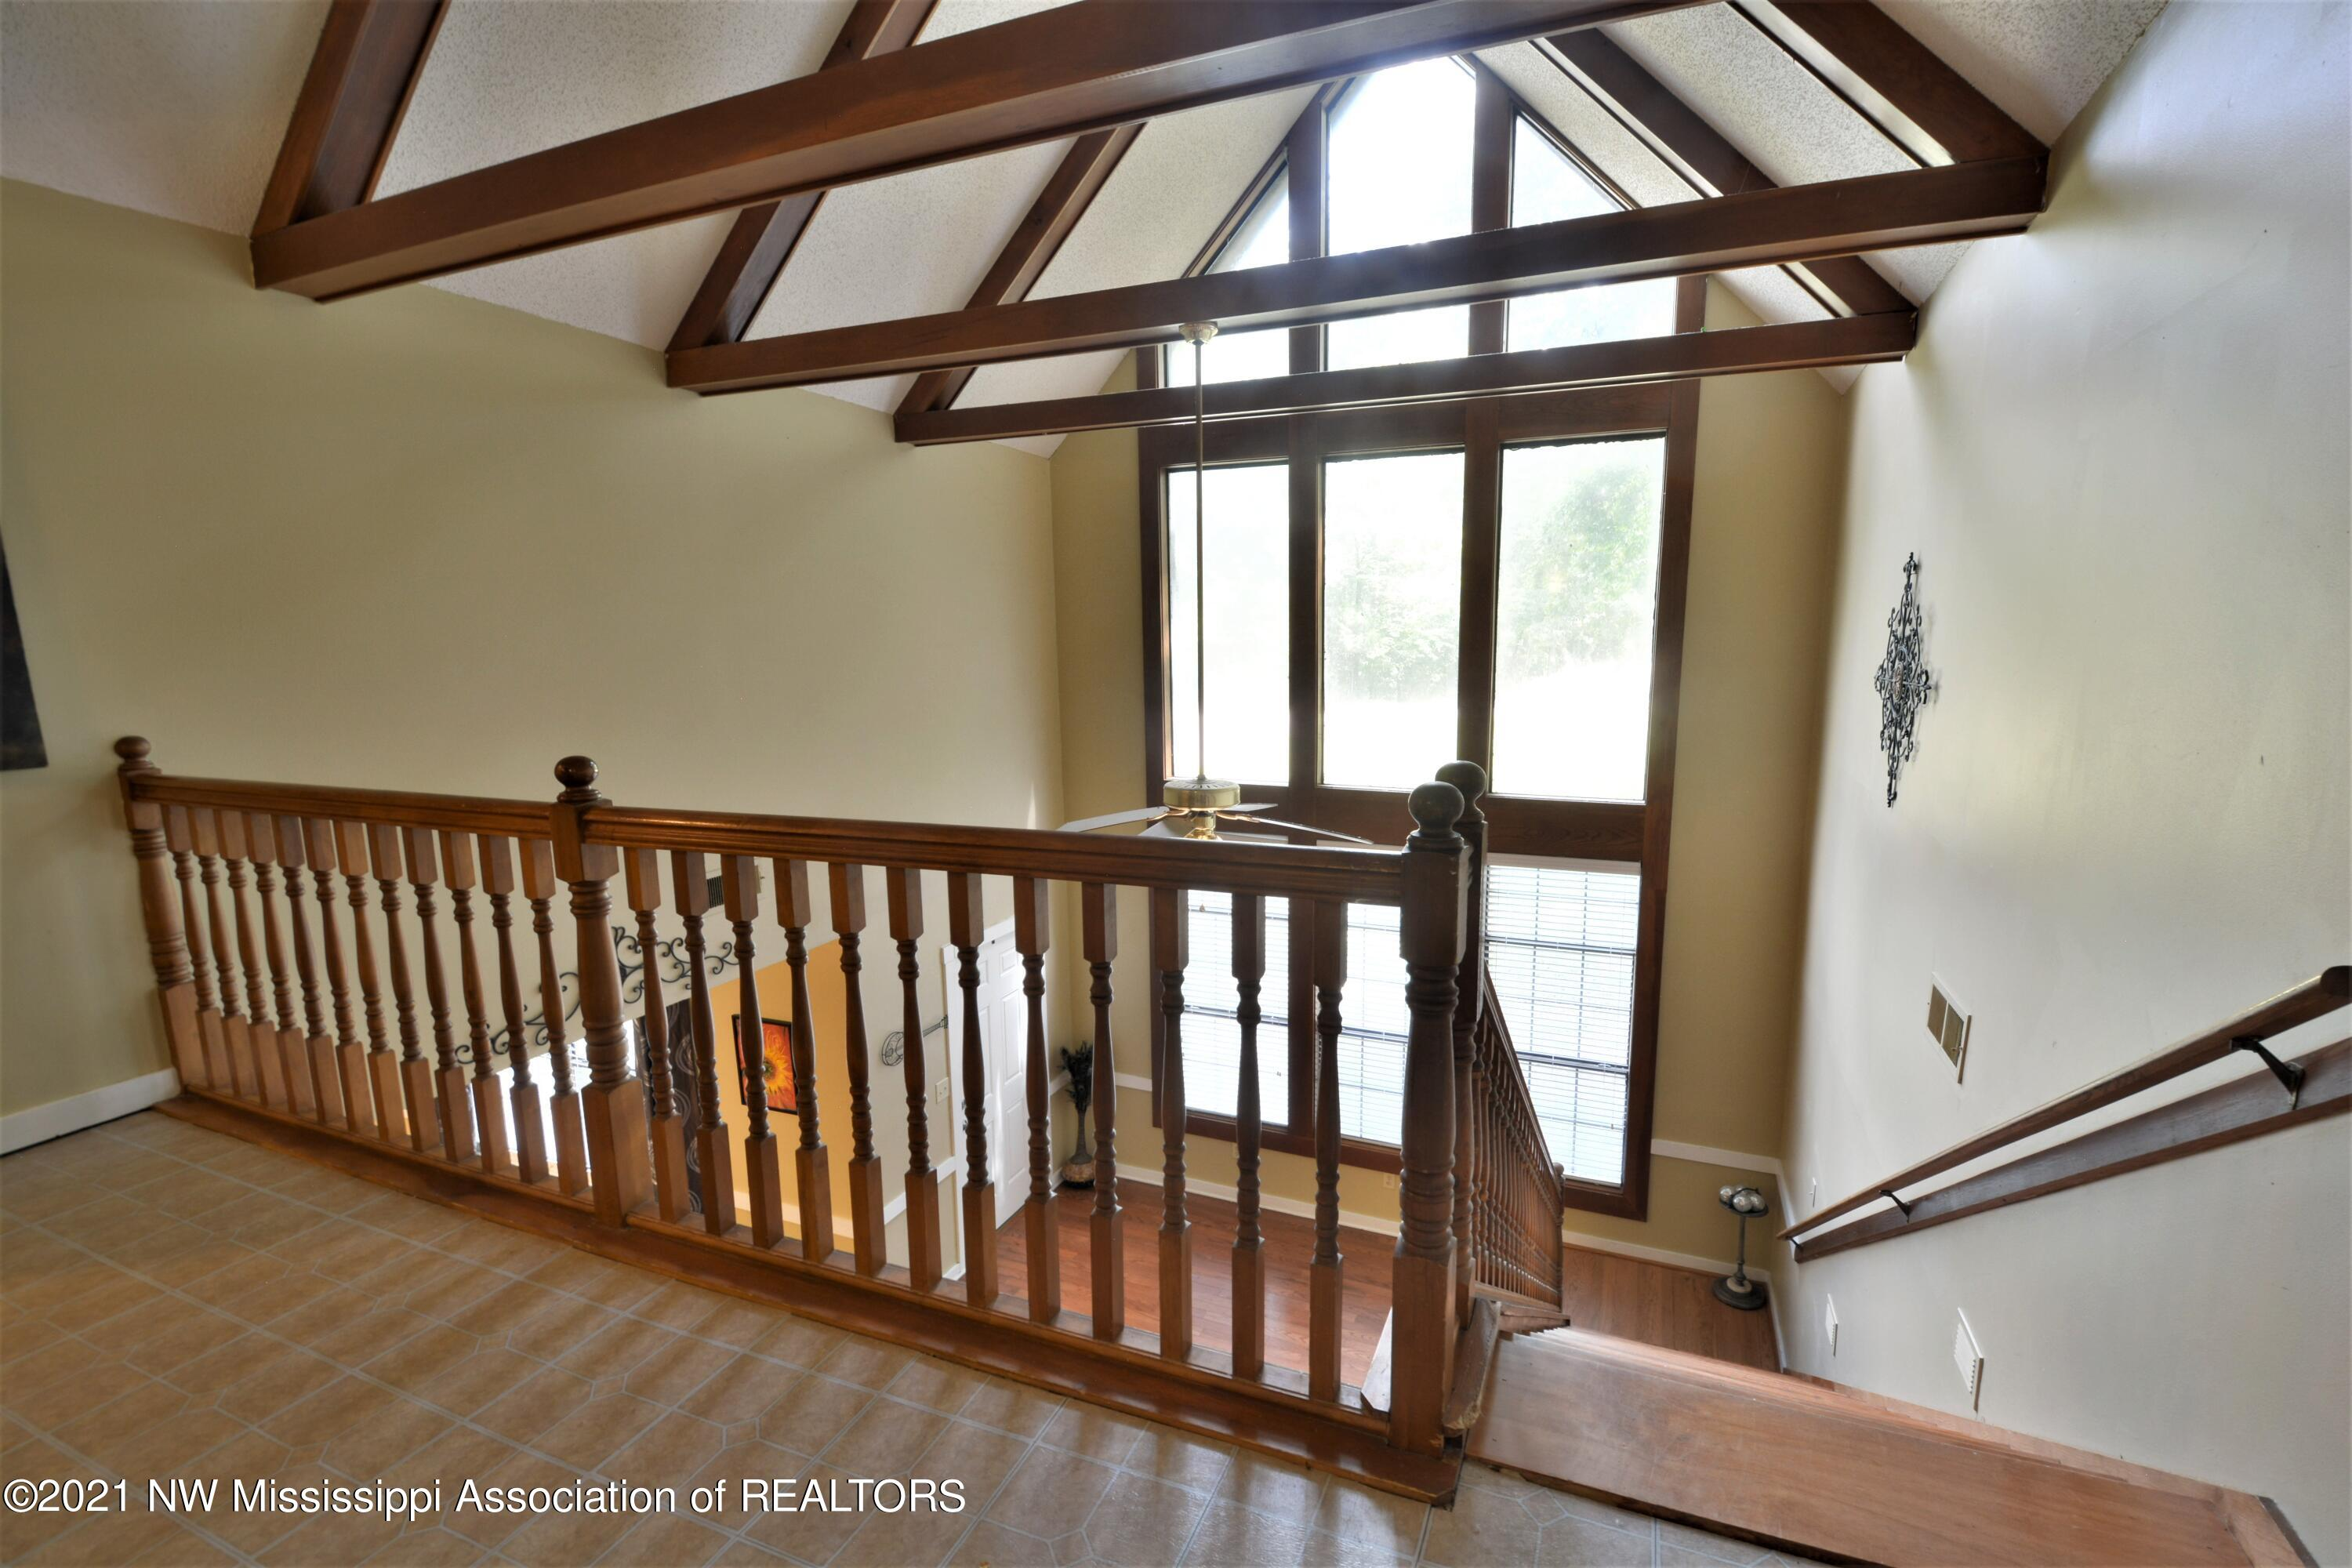 Wood beams over entry